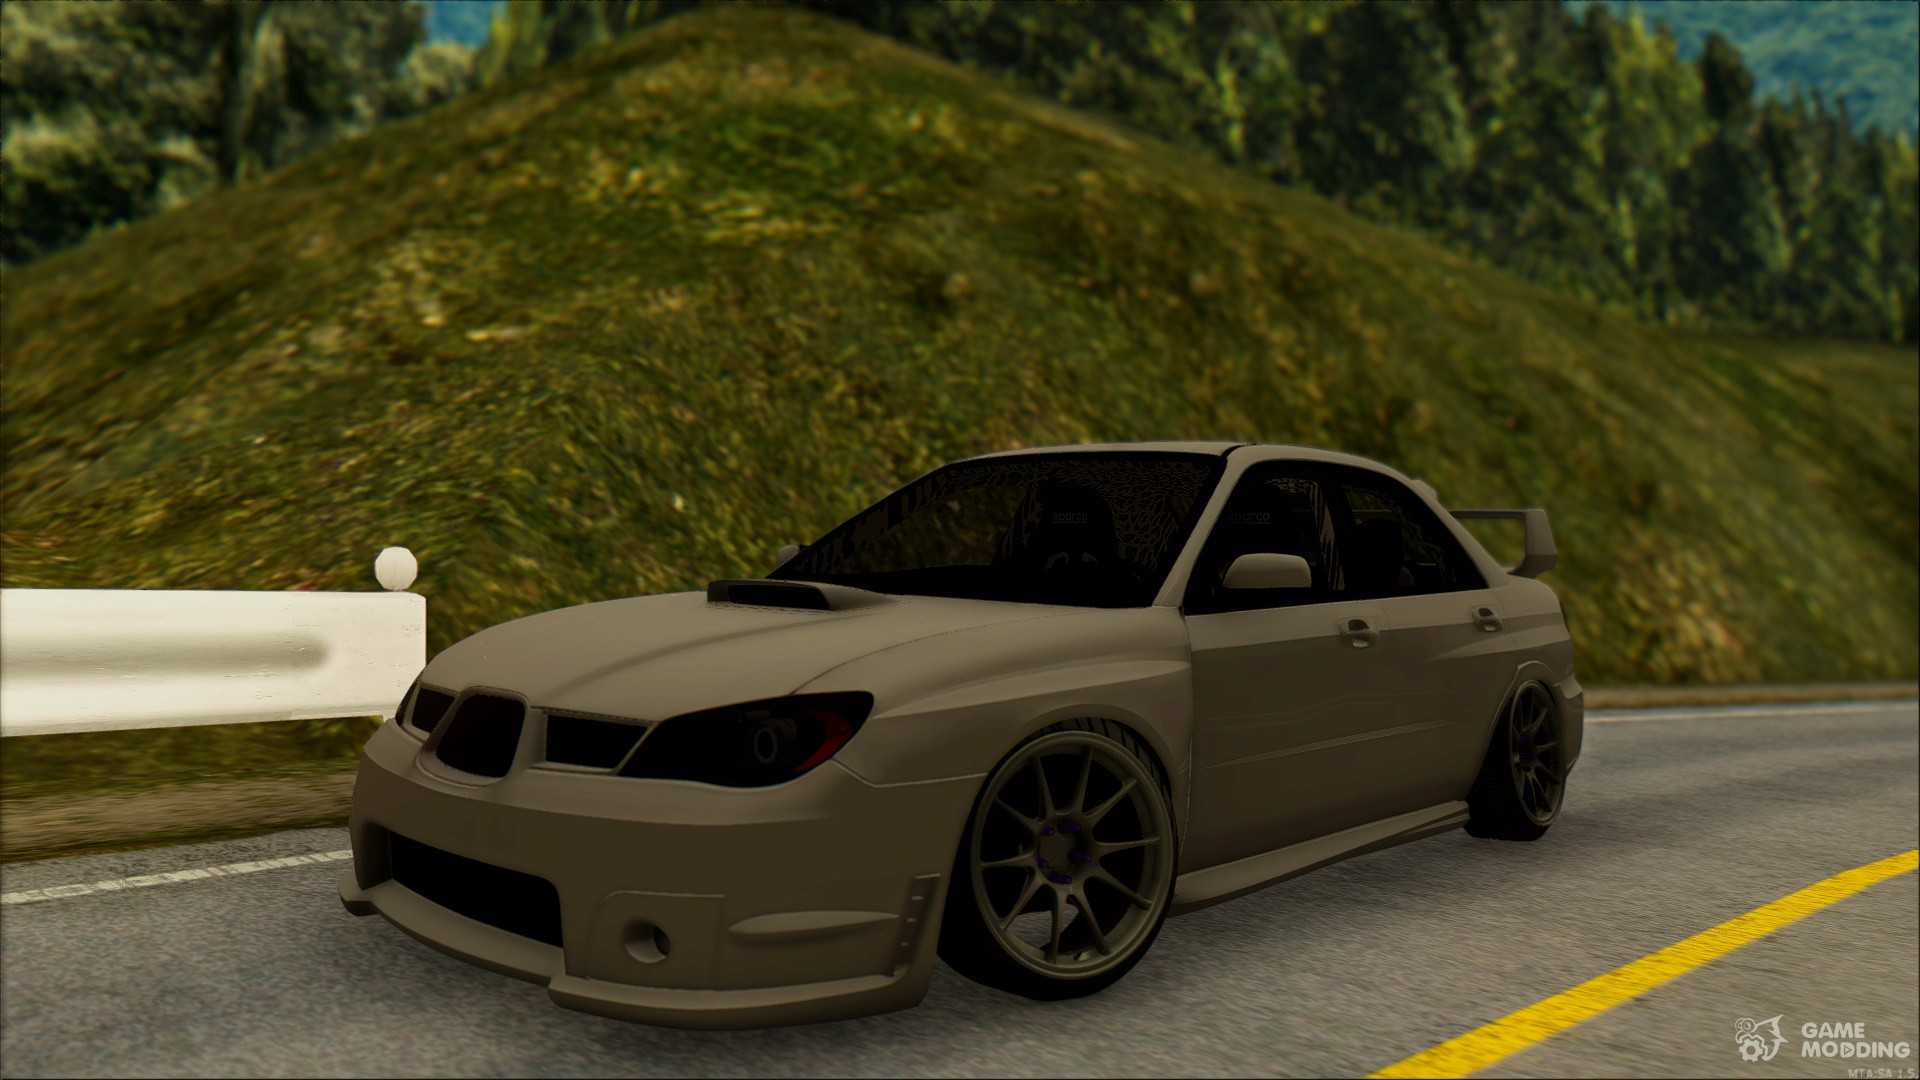 Impreza wrx sti stance for gta san andreas subaru impreza wrx sti stance for gta san andreas vanachro Image collections